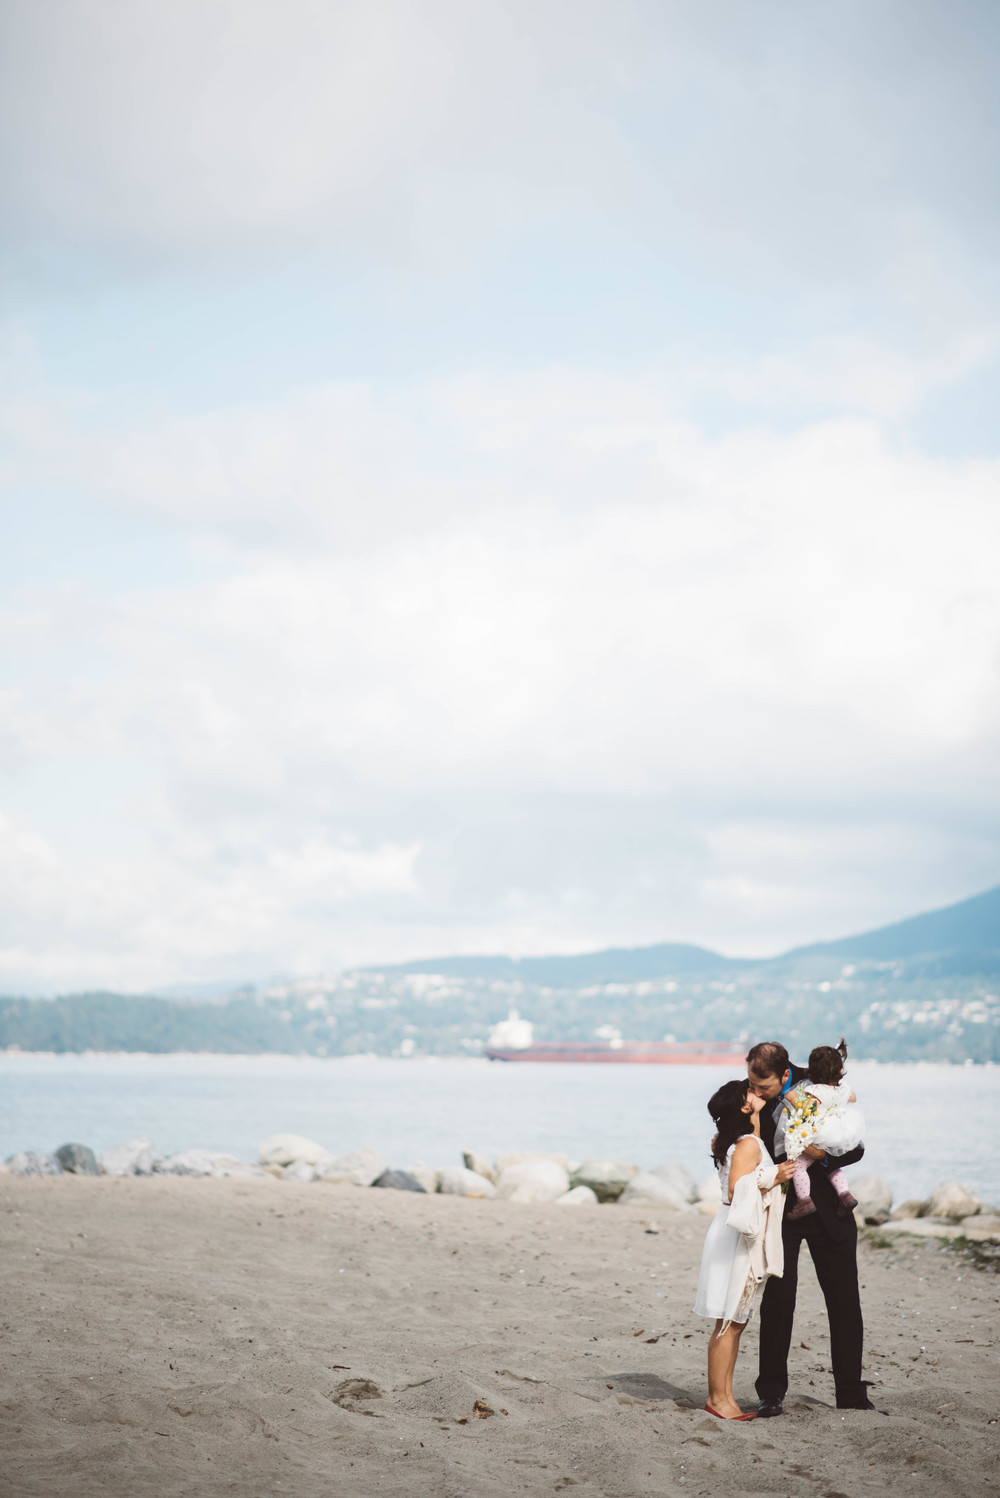 Ronette and Hugo Beach Elopement Wedding Vancouver Spanish Banks by Jo+Bo Photography Destination Vancouver Thailand Wedding Photographer (159).jpg